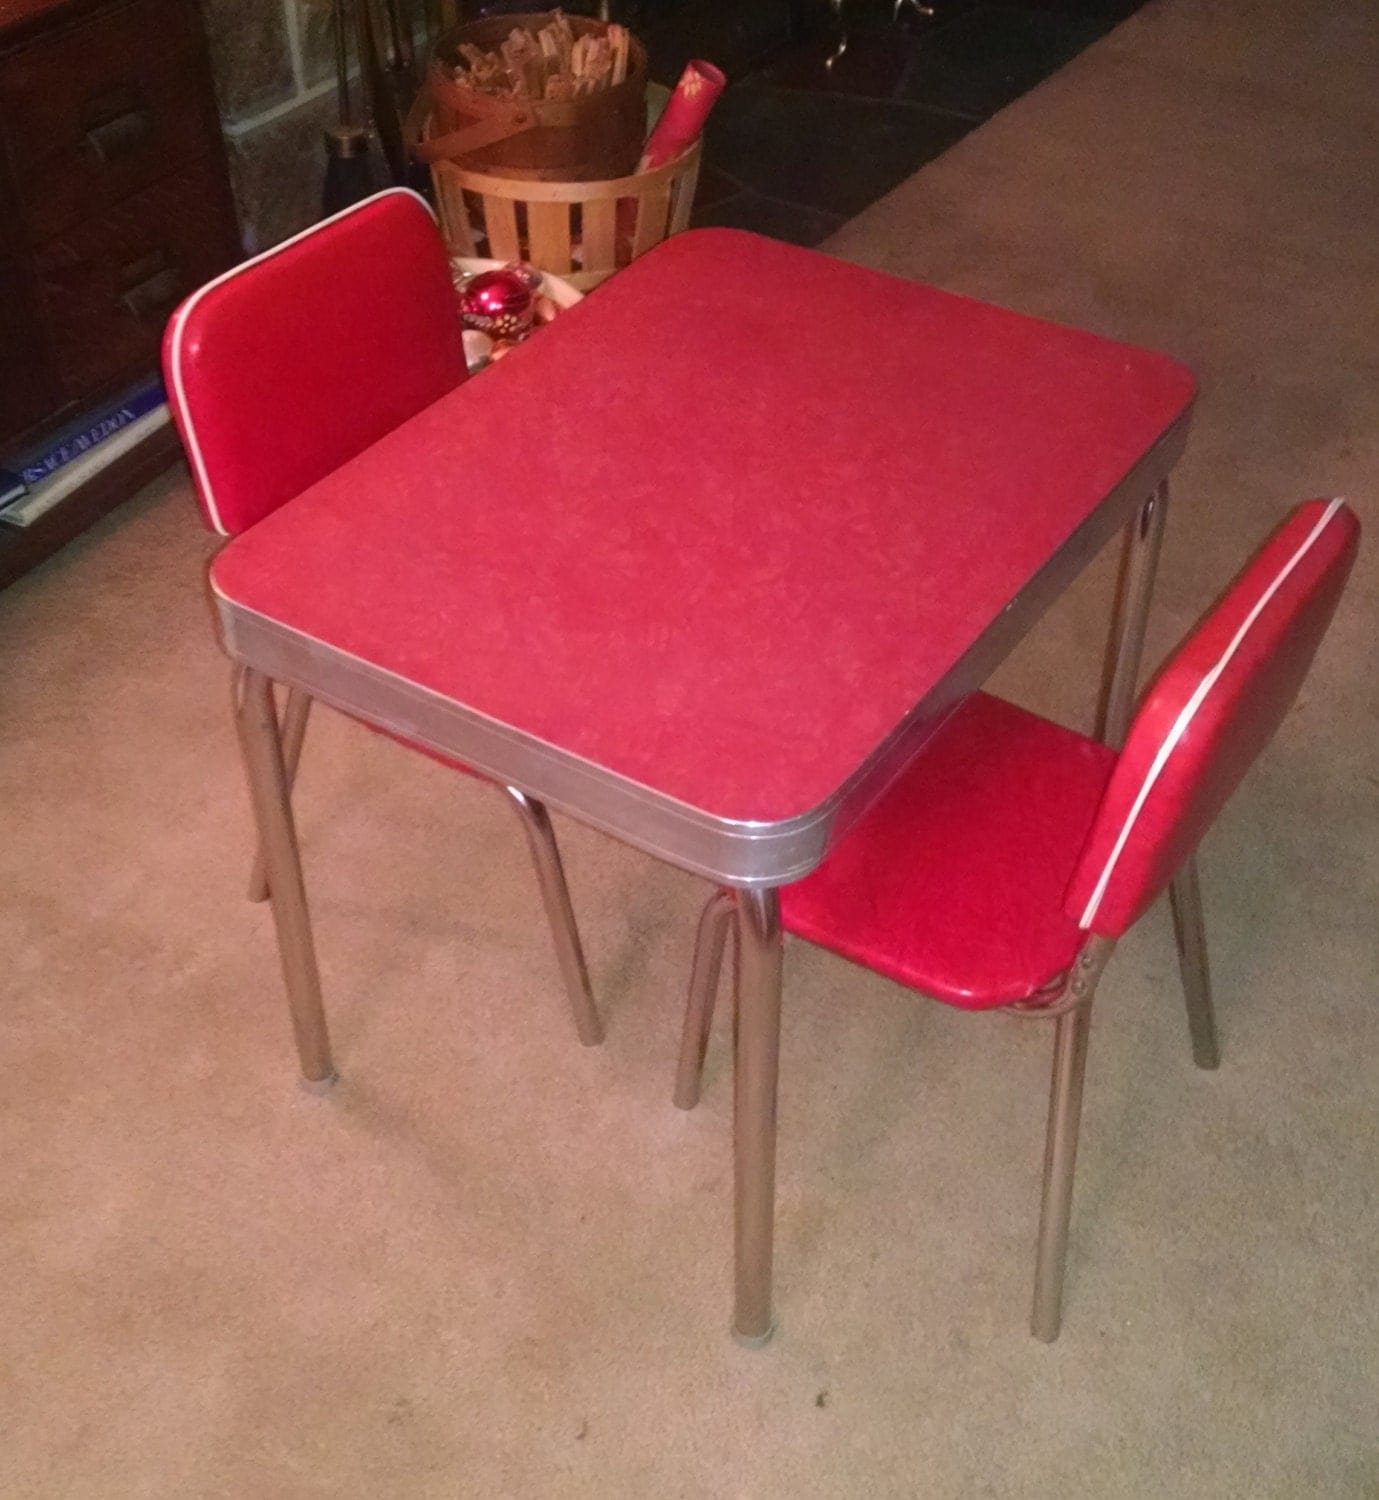 Red Kitchen Table: 1950's CHILD SIZE Retro Vintage Red Formica Kitchen Table